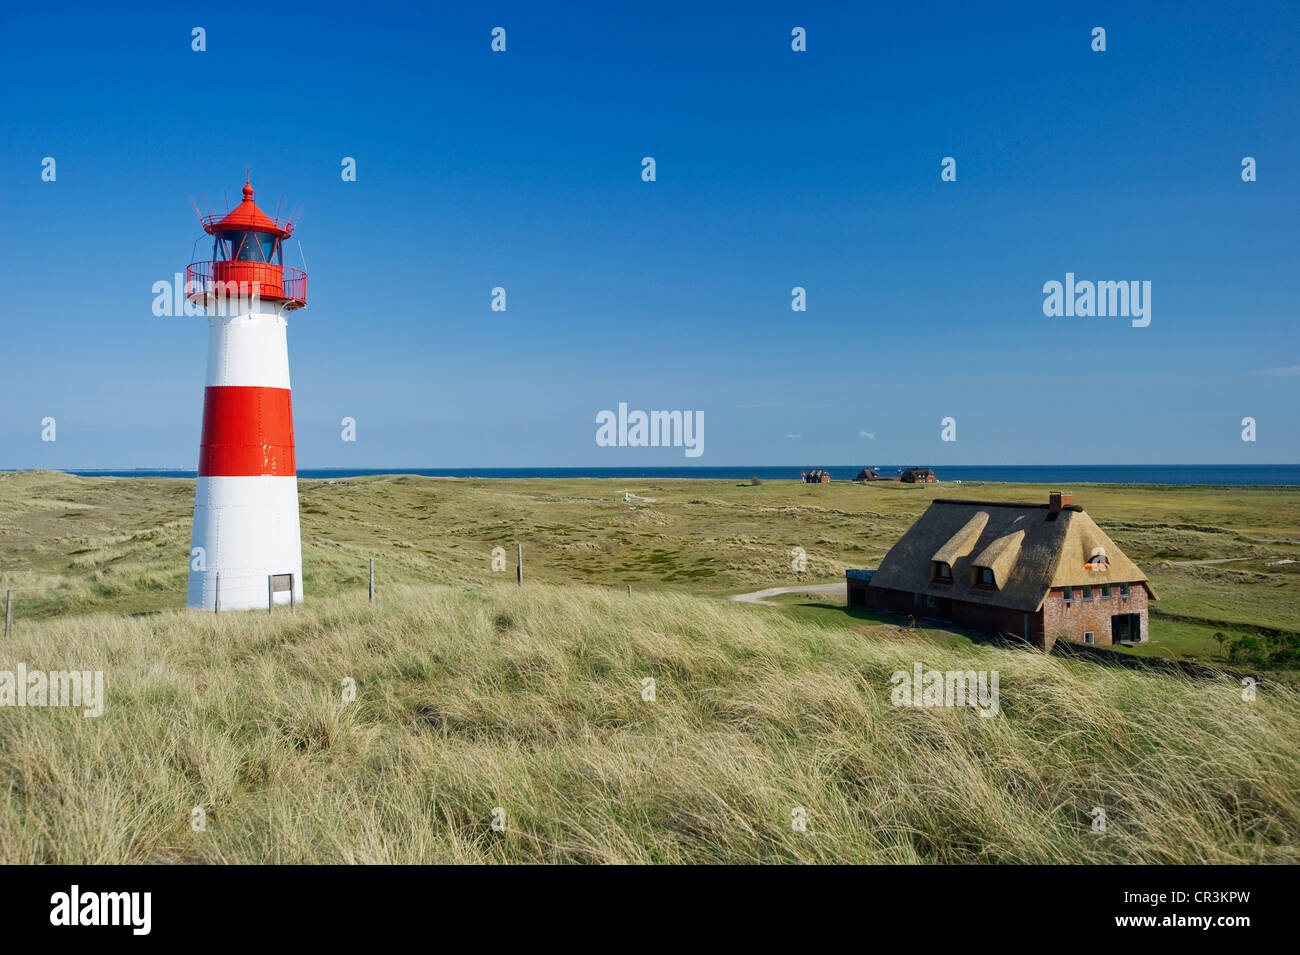 List-Ost lighthouse, List, Sylt, Schleswig-Holstein, Germany, Europe - Stock Image